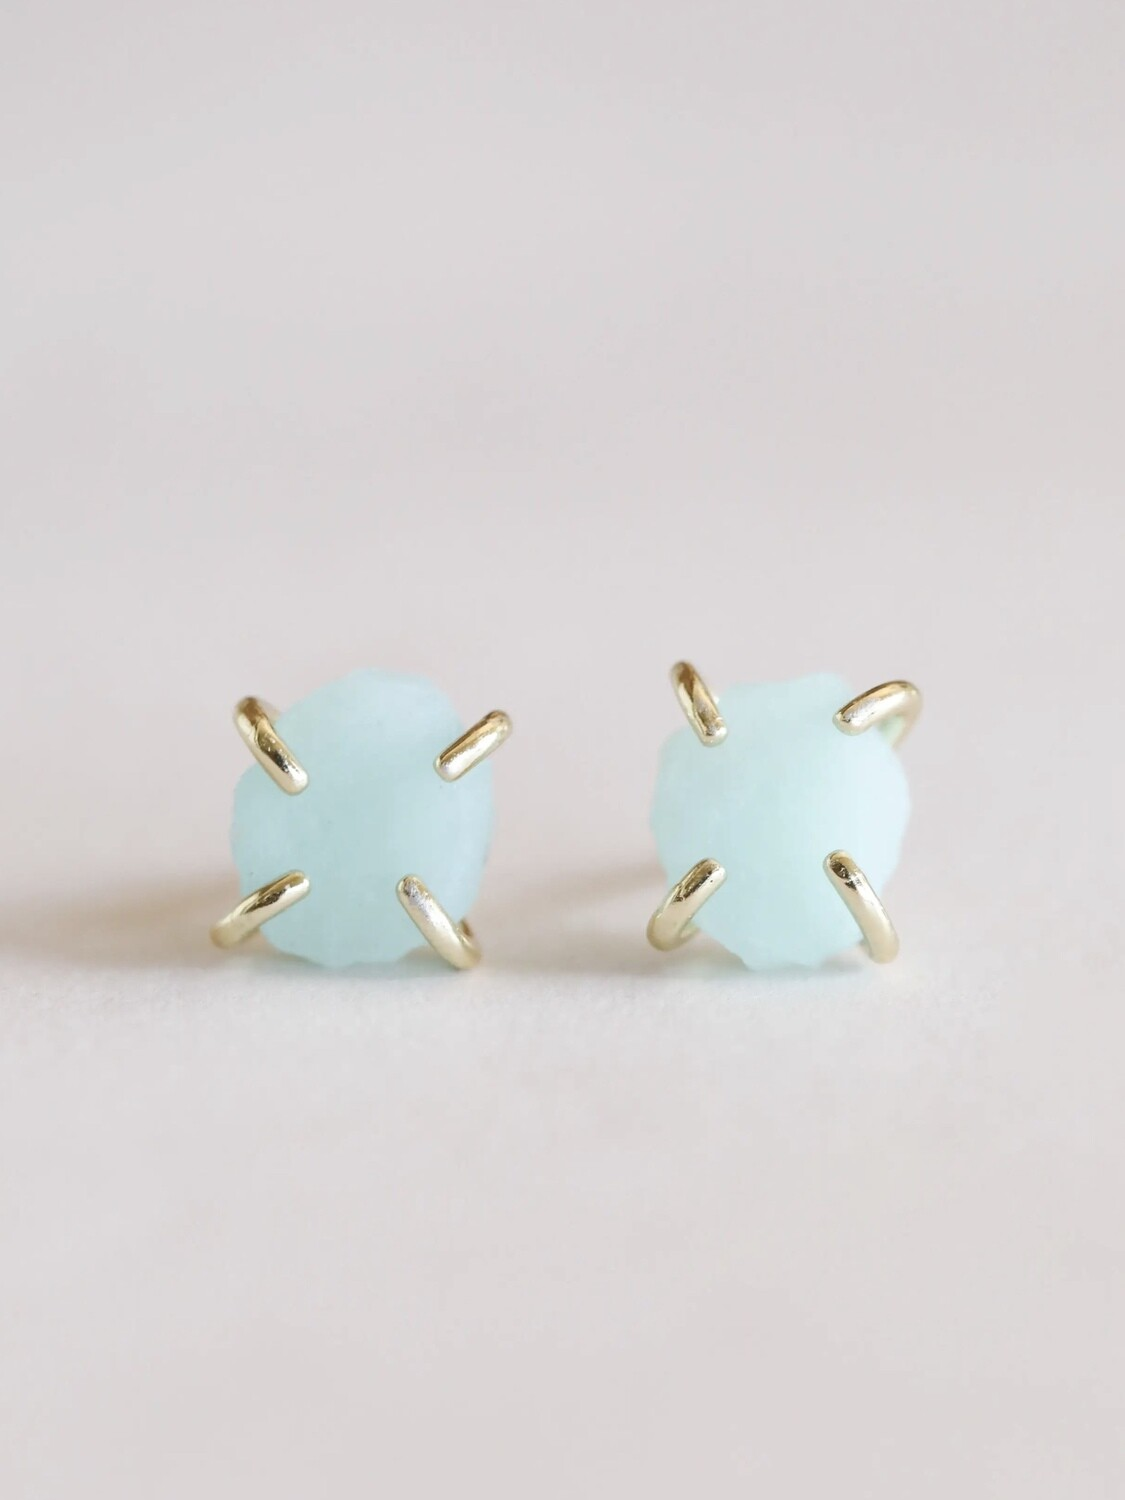 Amazonite Gemstone Prong Posts - 18k Gold Over Silver - JK33